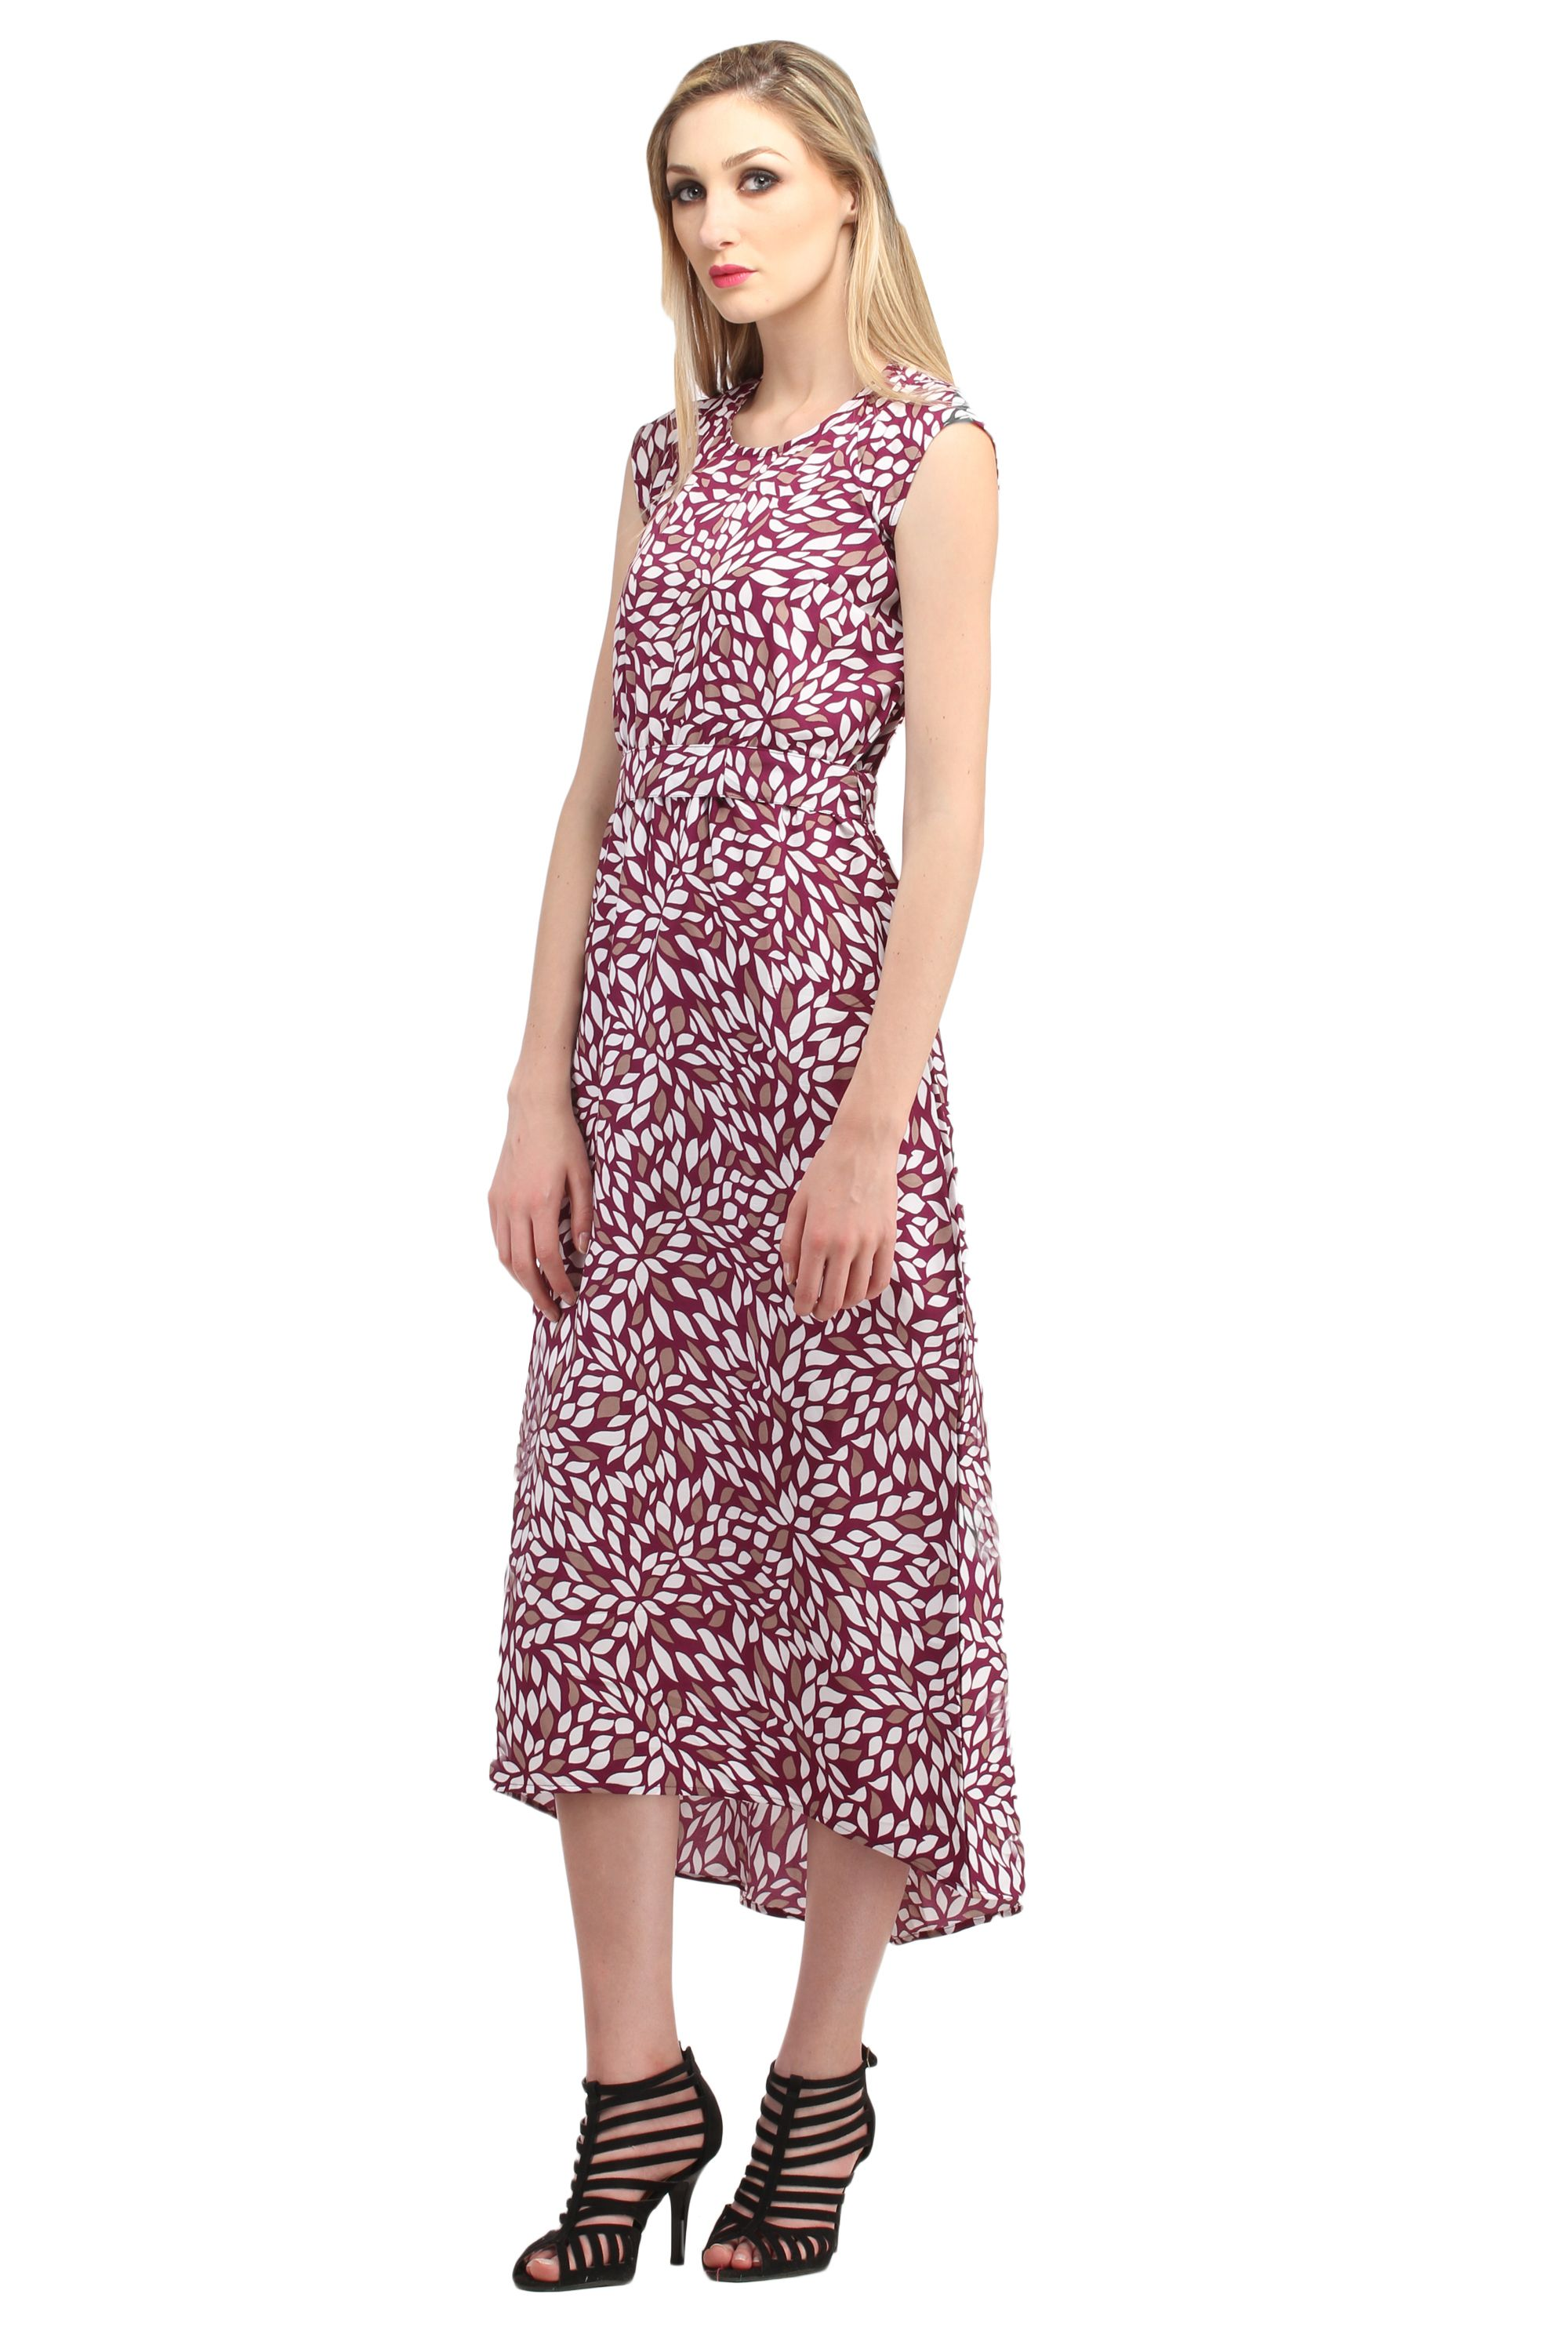 Shop Online for Cottinfab Women s Long Dress in India at Voonik.com ... 16a593afc